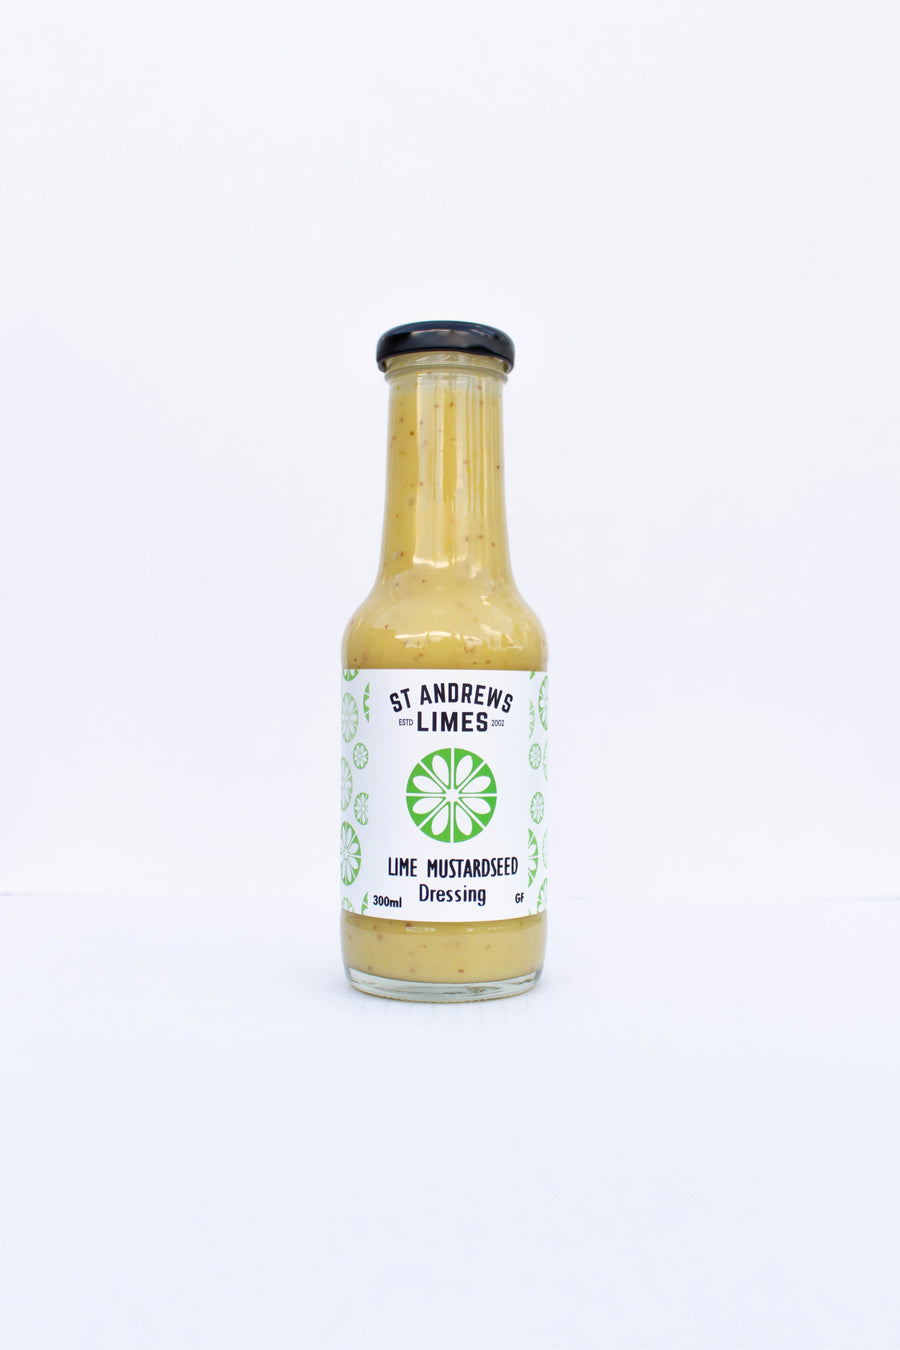 Lime Mustard Seed dressing